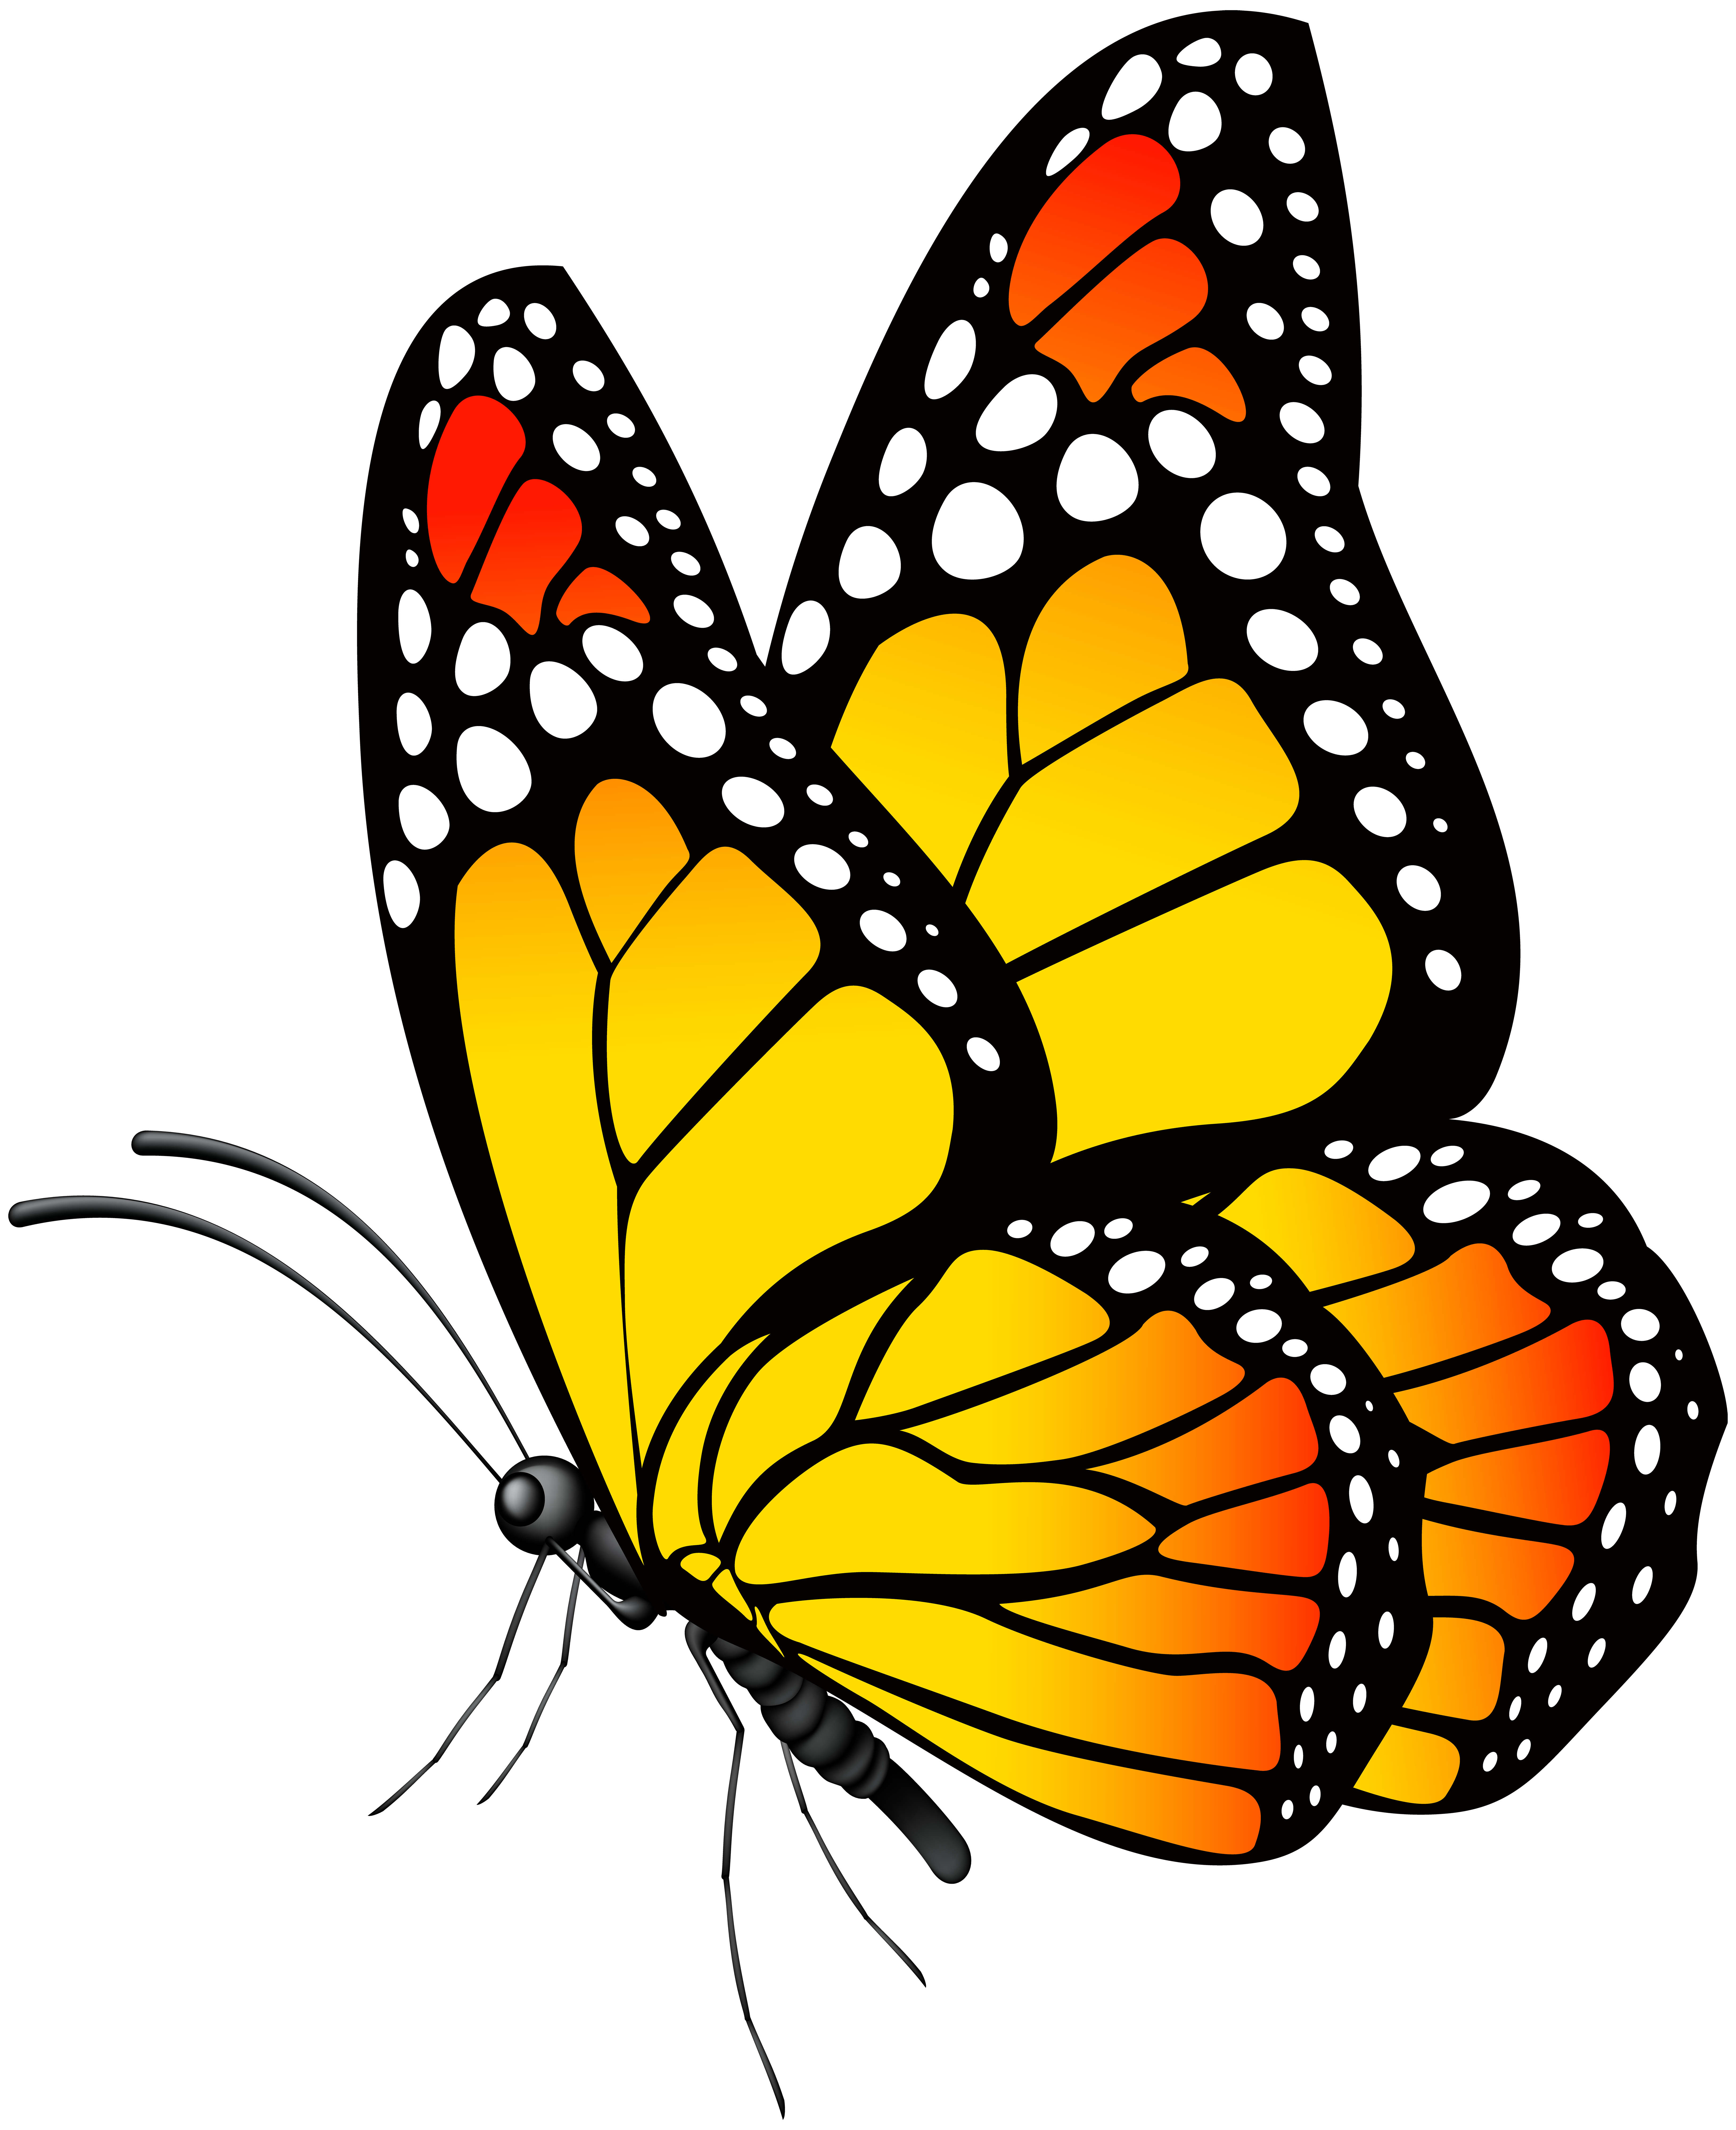 Yellow butterfly png. Monarch clipart at getdrawings